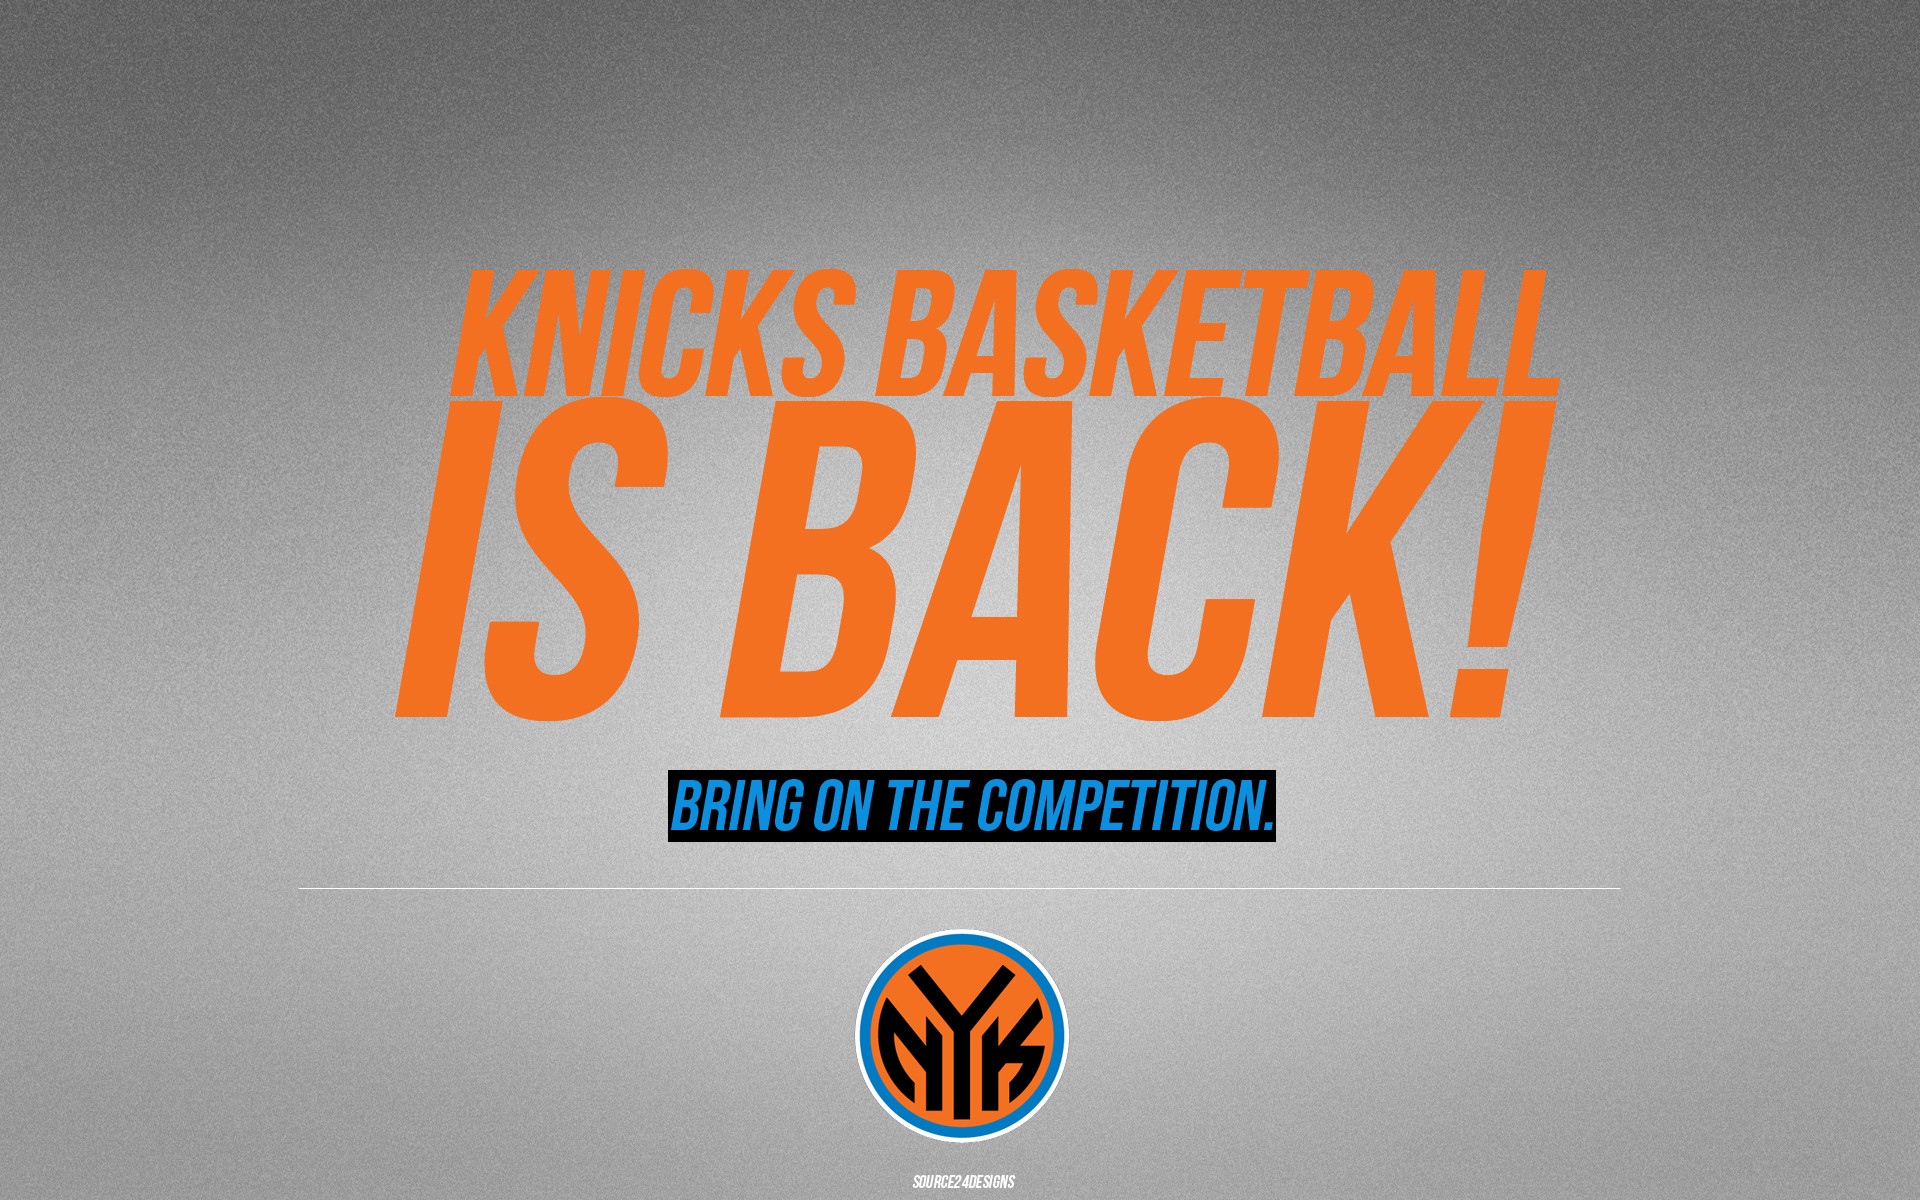 New York Knicks Wallpaper 2013 85 images